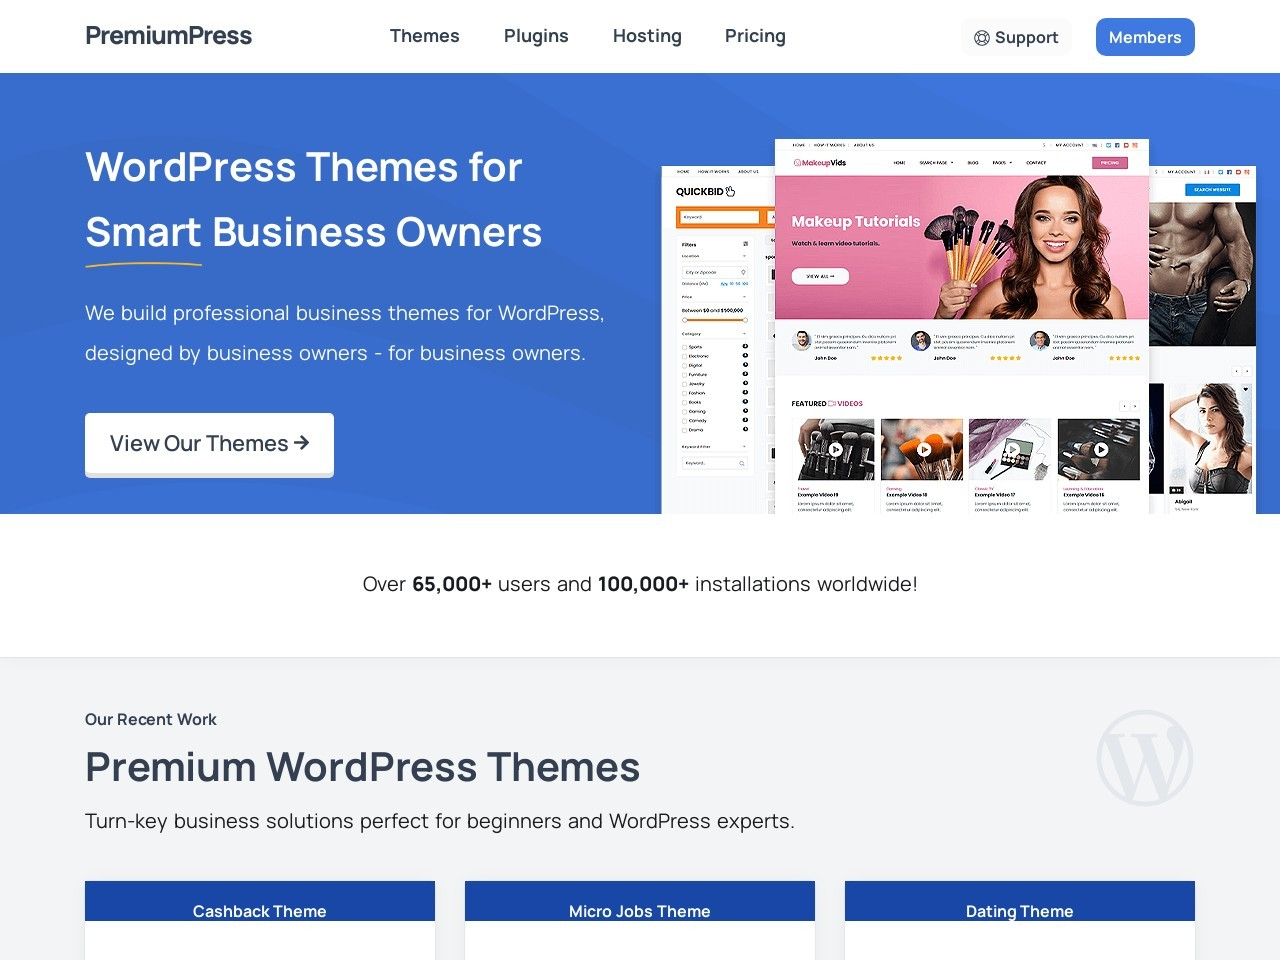 PremiumPress Micro Jobs Theme